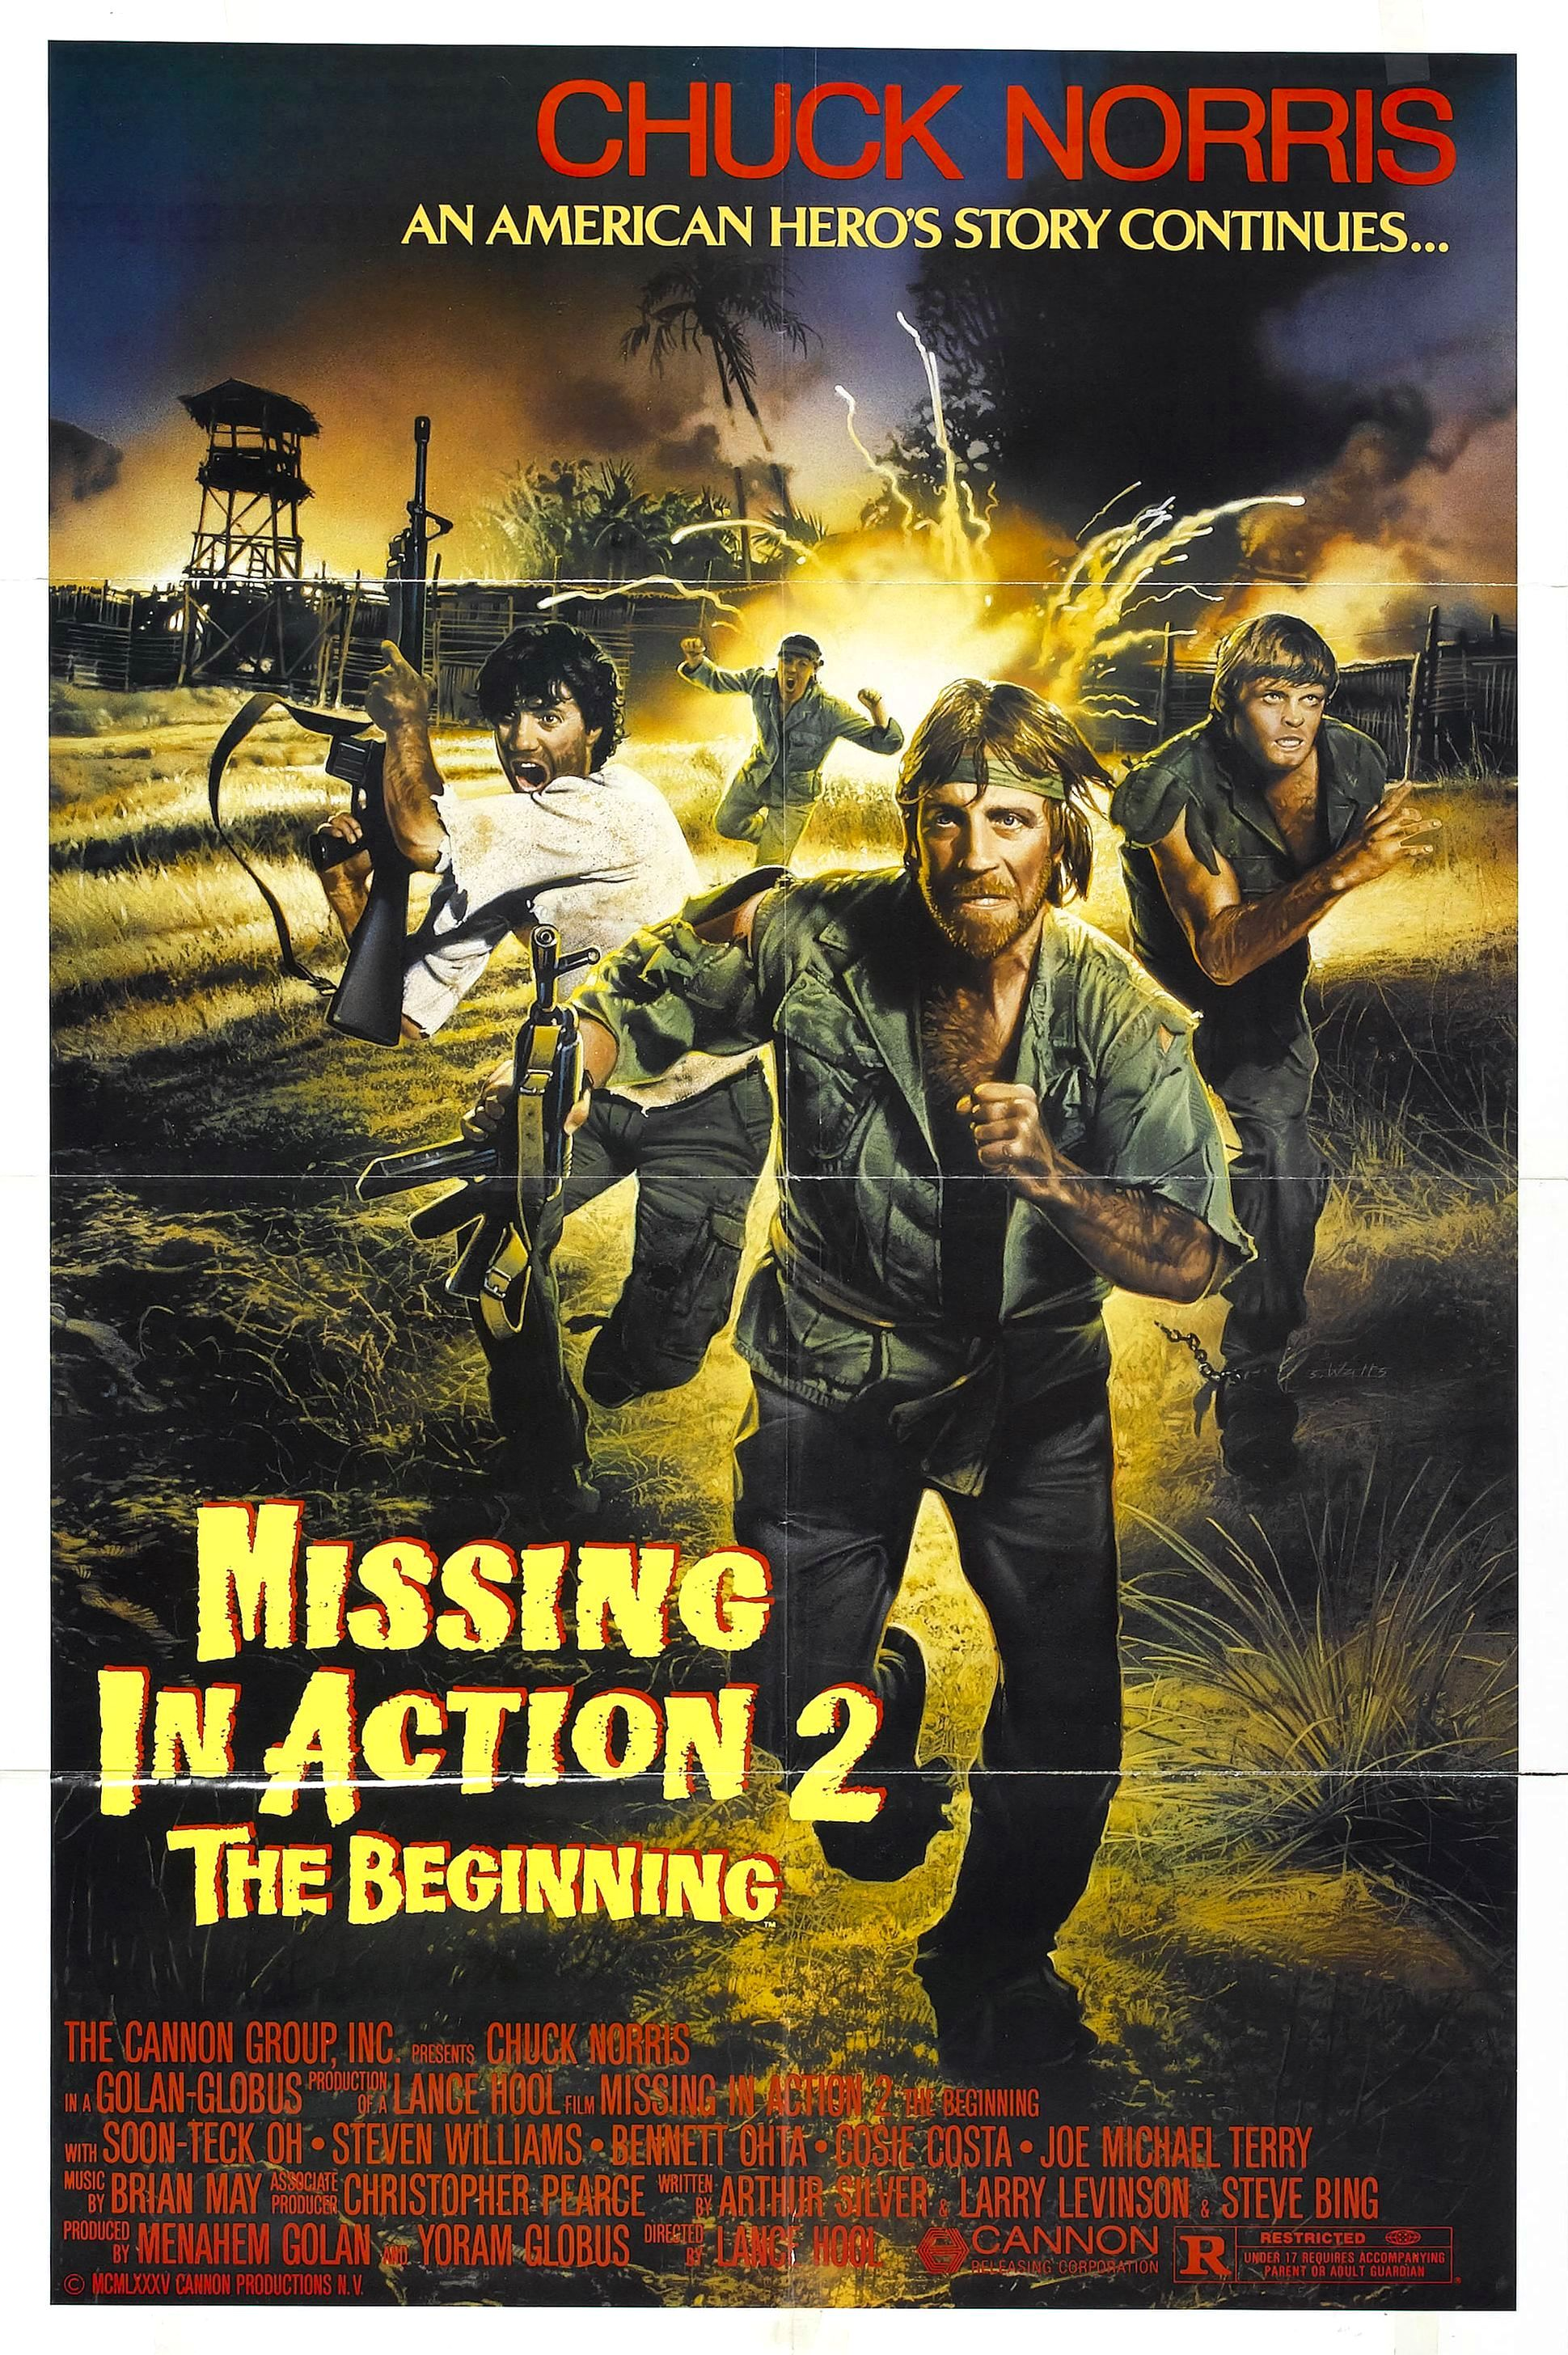 Missing in Action 2 - The Beginning (1985)